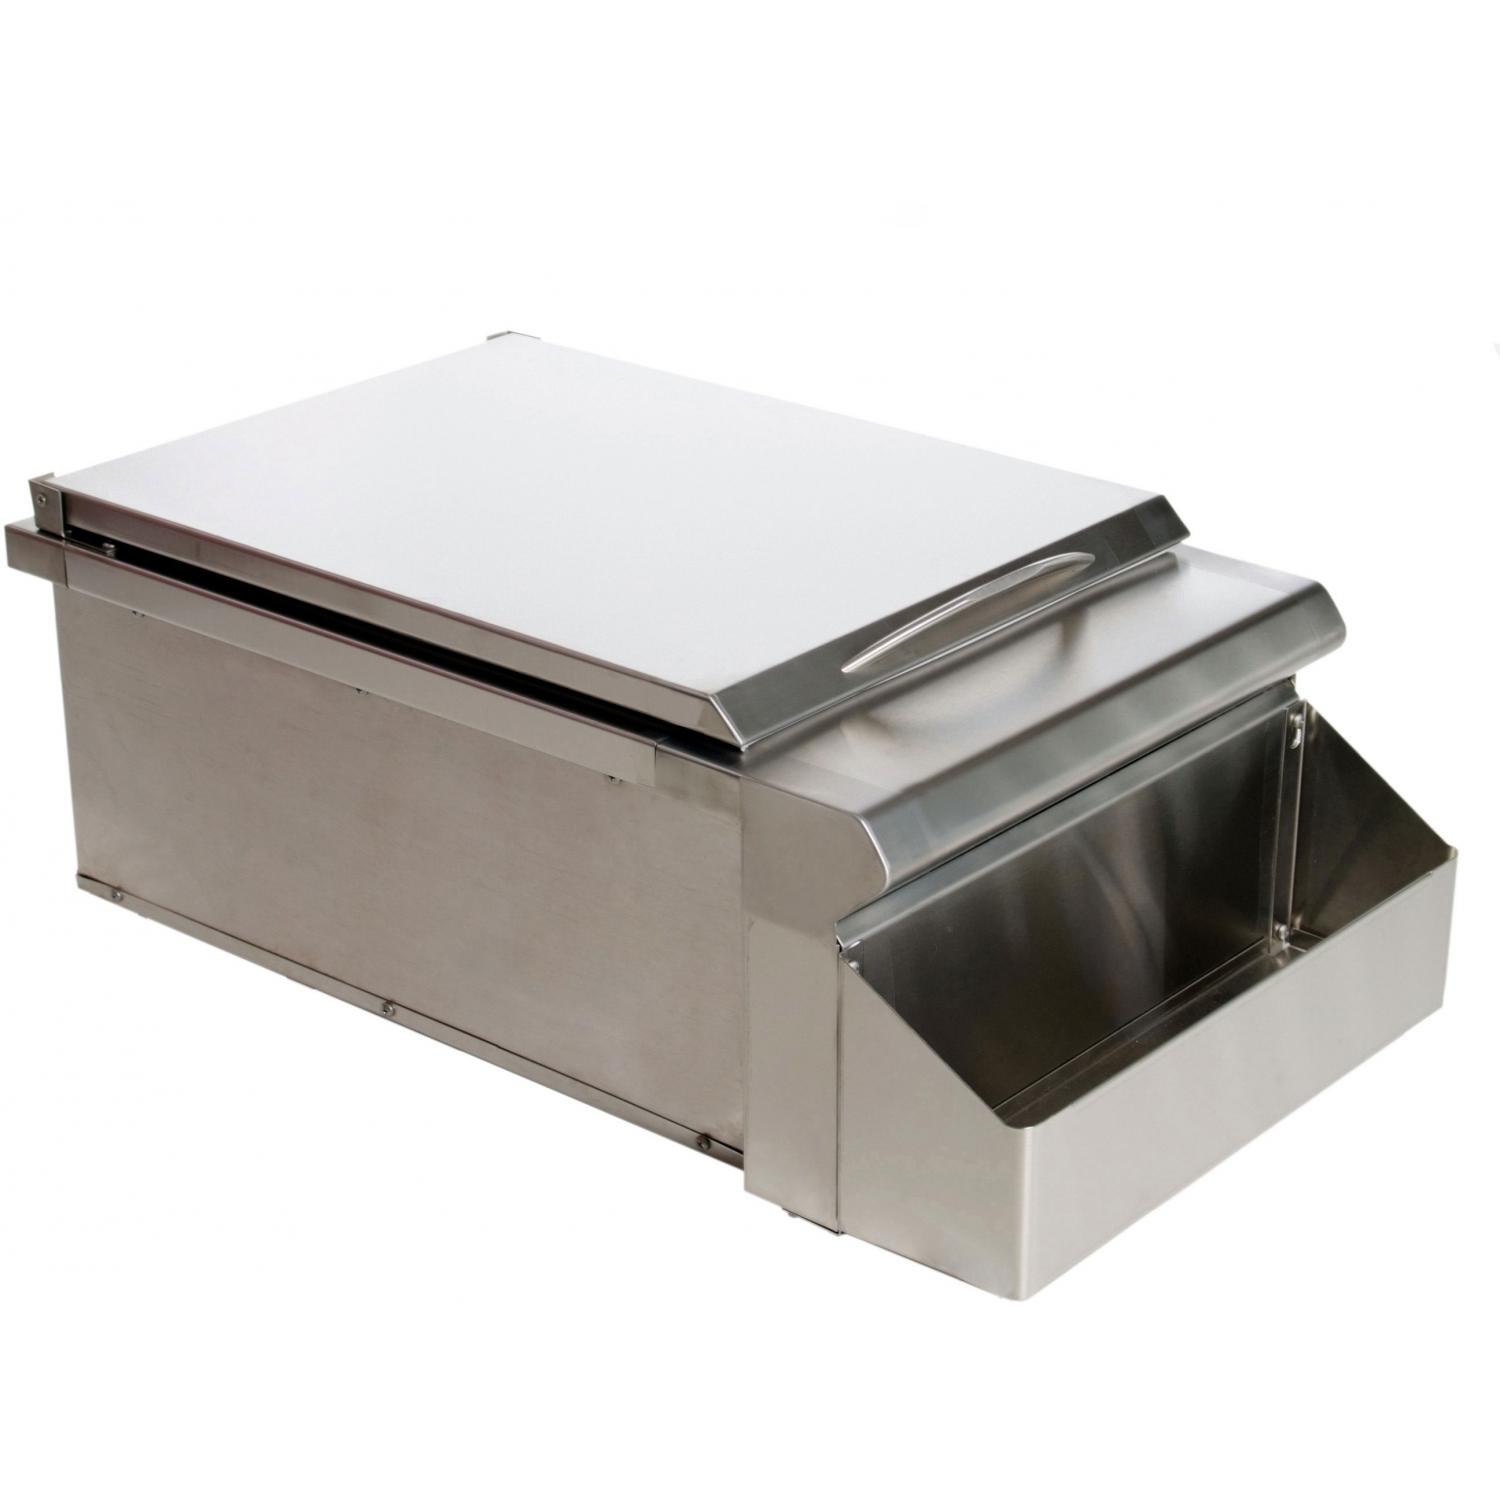 Bbq Guys 15 Inch Ice Bin Bar Cooler With Bottle Holder at Sears.com